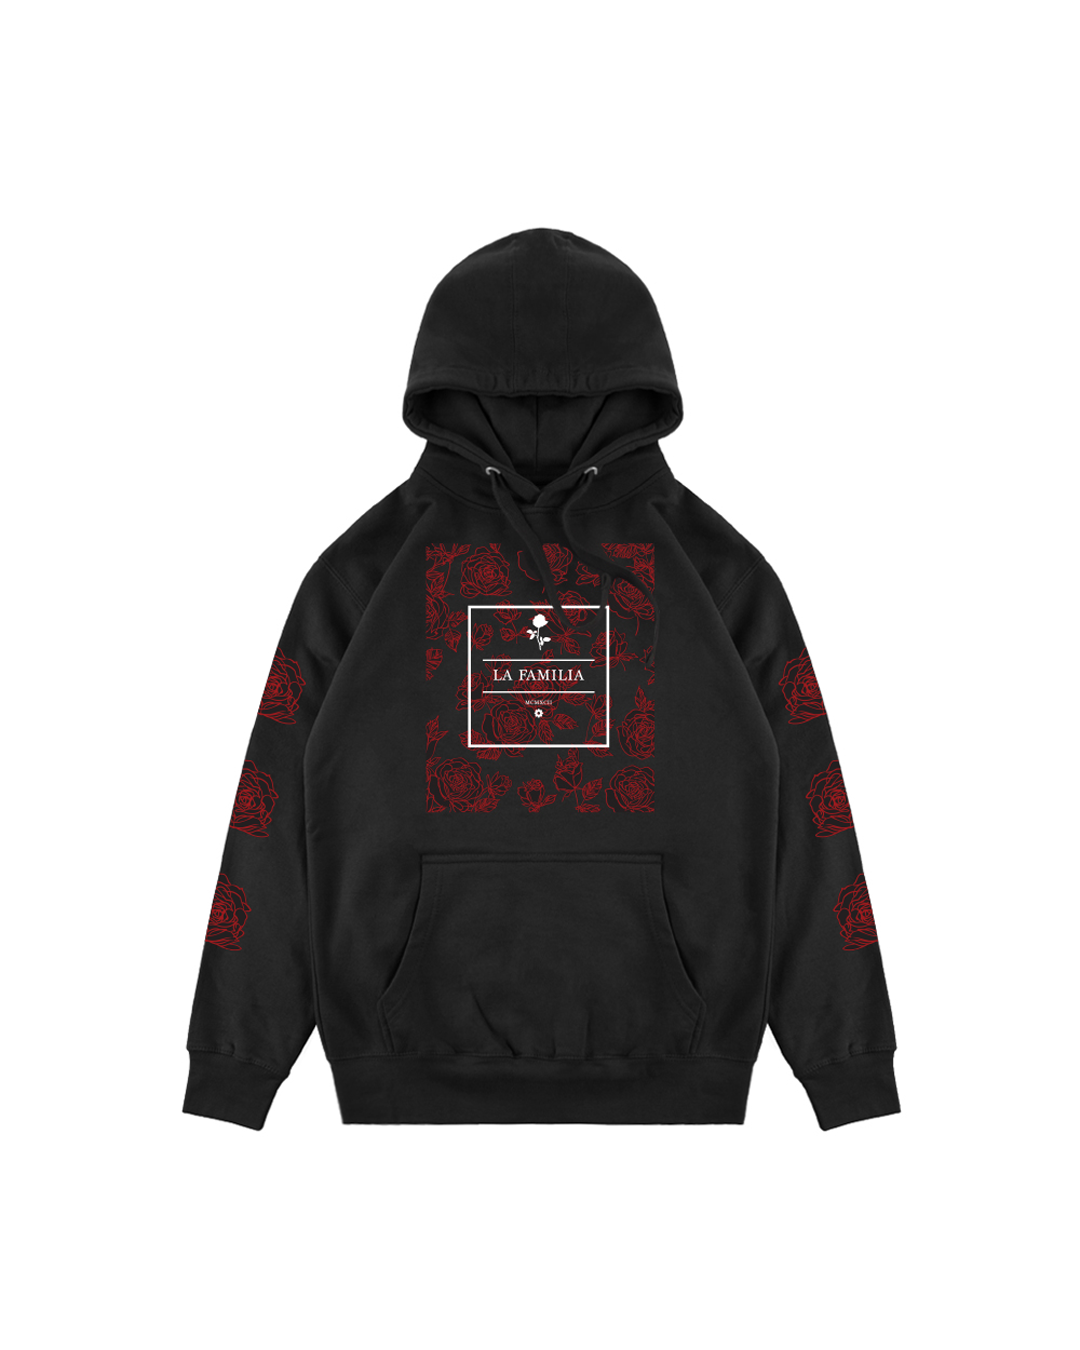 CORE ROSE HOODIE - LA FAMILIA WORLDWIDE